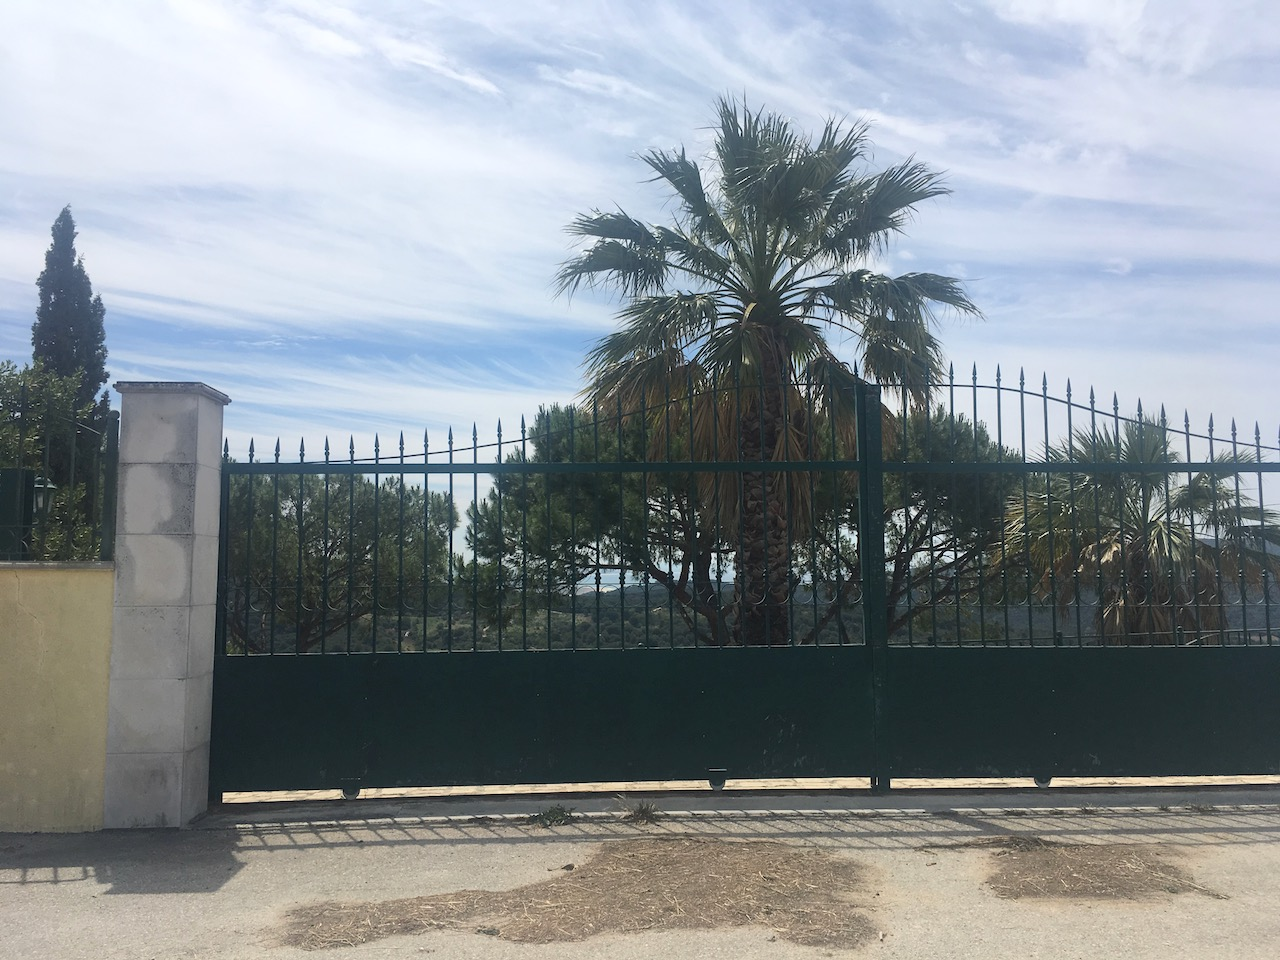 Functional gates despite their extra width and the palm tree